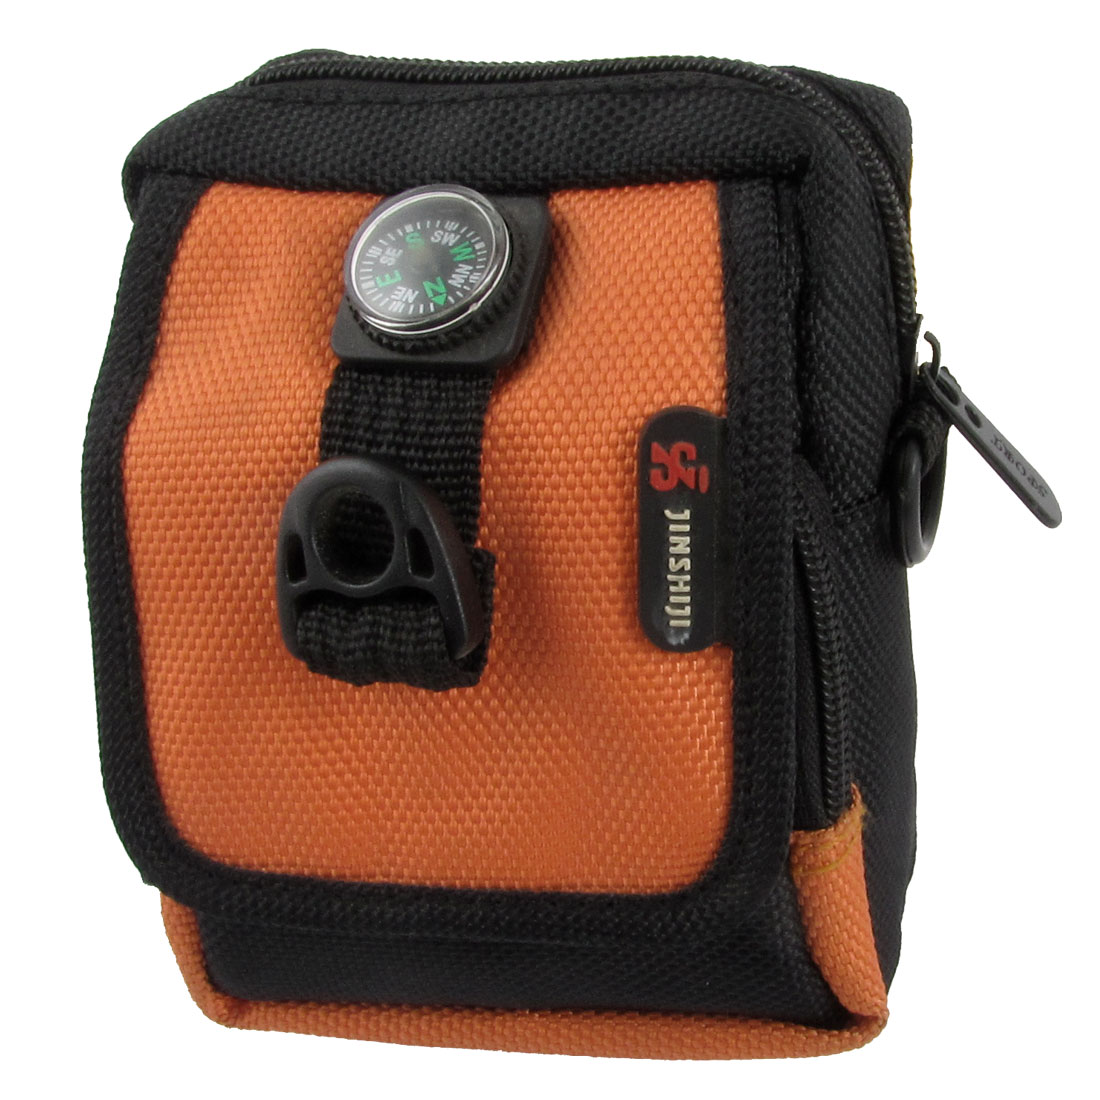 Man Black Orange Decor Faux Leather 3 Pockets Waist Bag w Compass